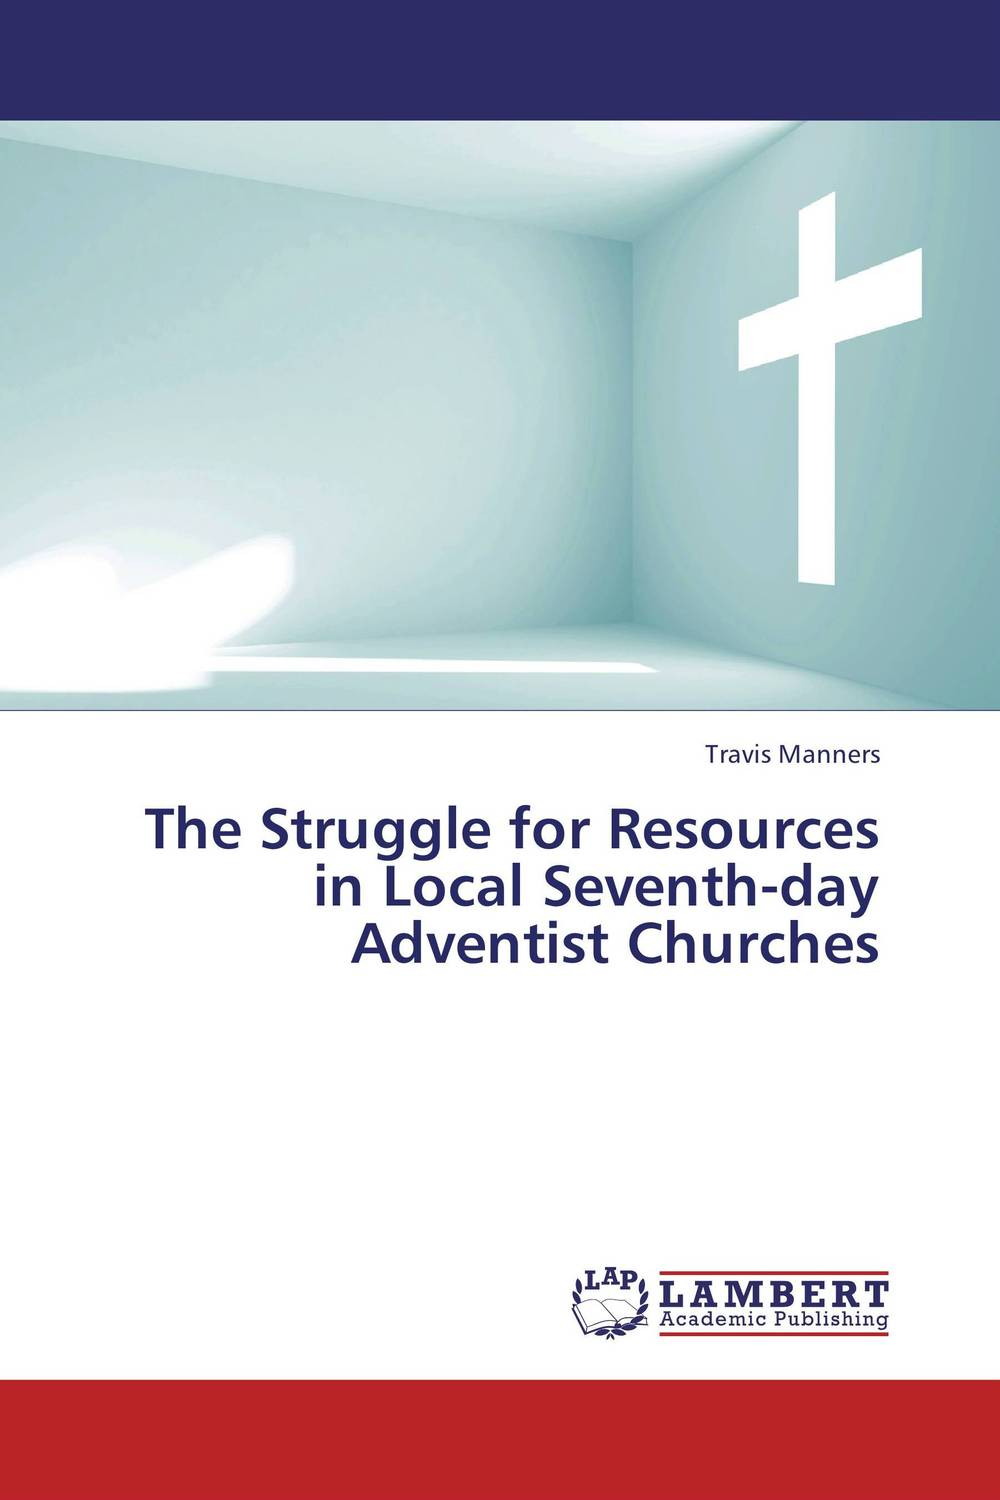 The Struggle for Resources in Local Seventh-day Adventist Churches the application of global ethics to solve local improprieties